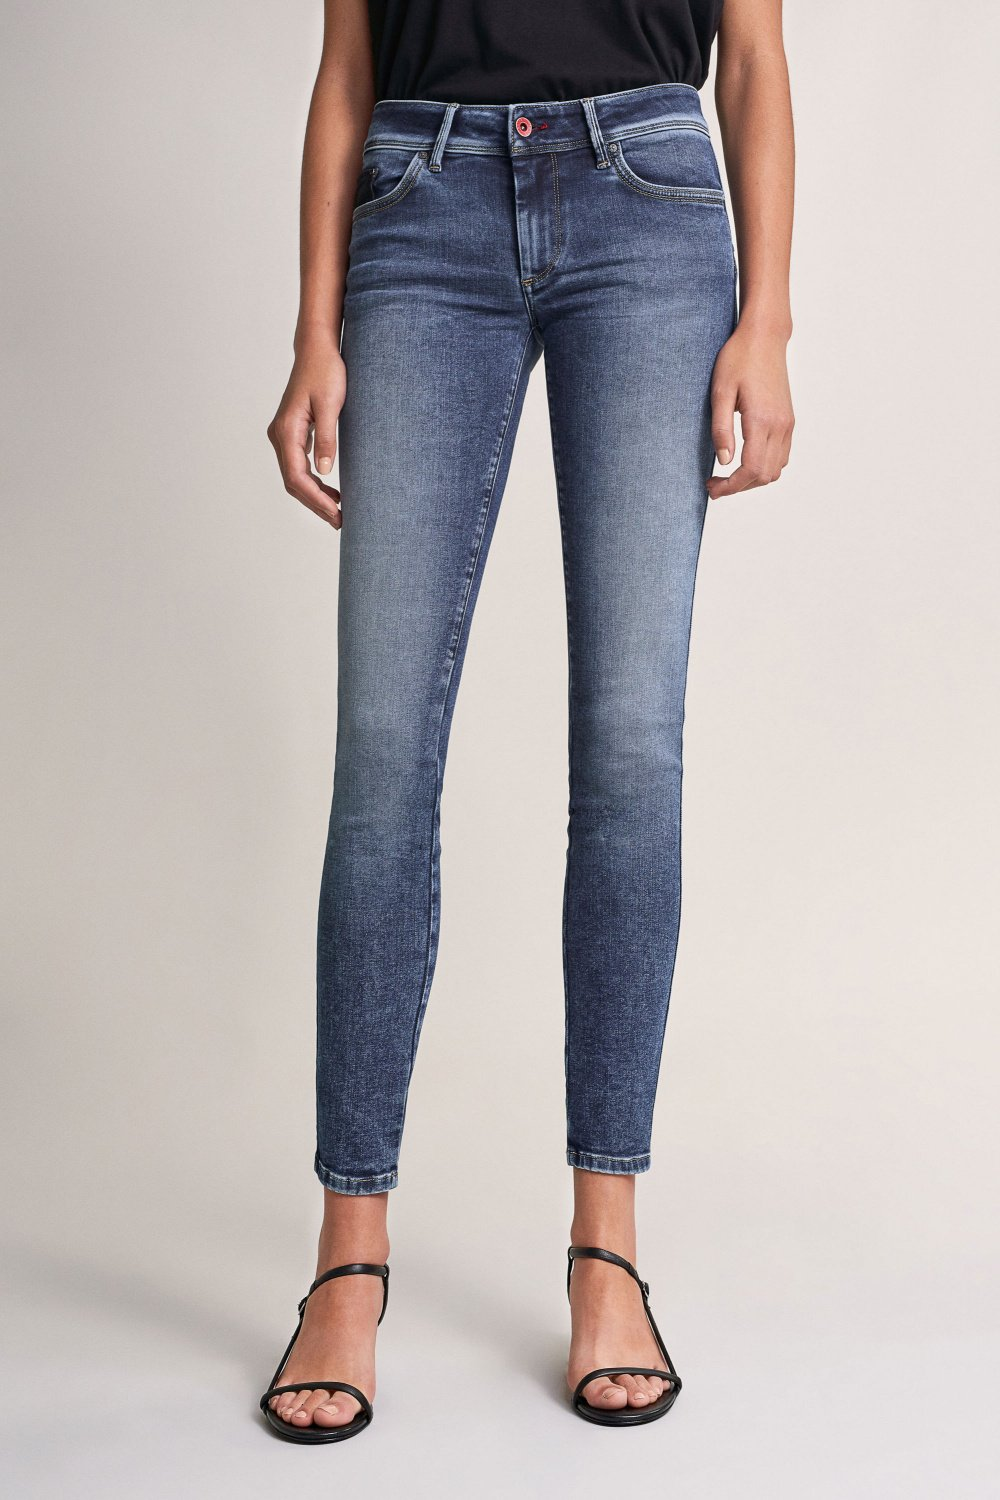 Push Up Wonder skinny jeans with detail - Salsa